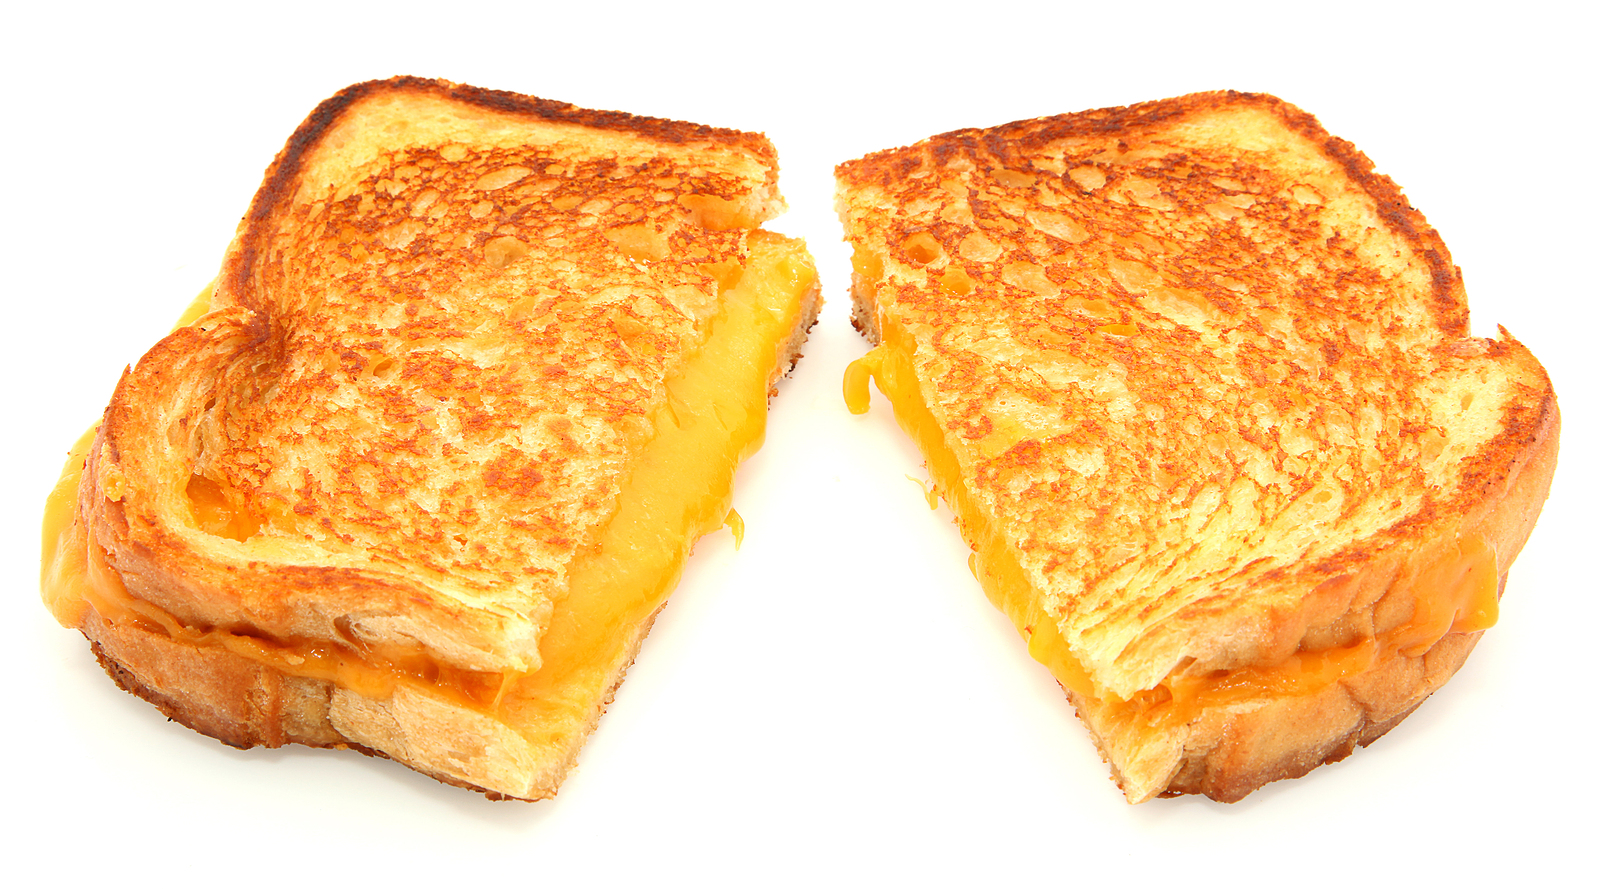 Grilled Cheese Sandwich Isolated On White_1523519893289